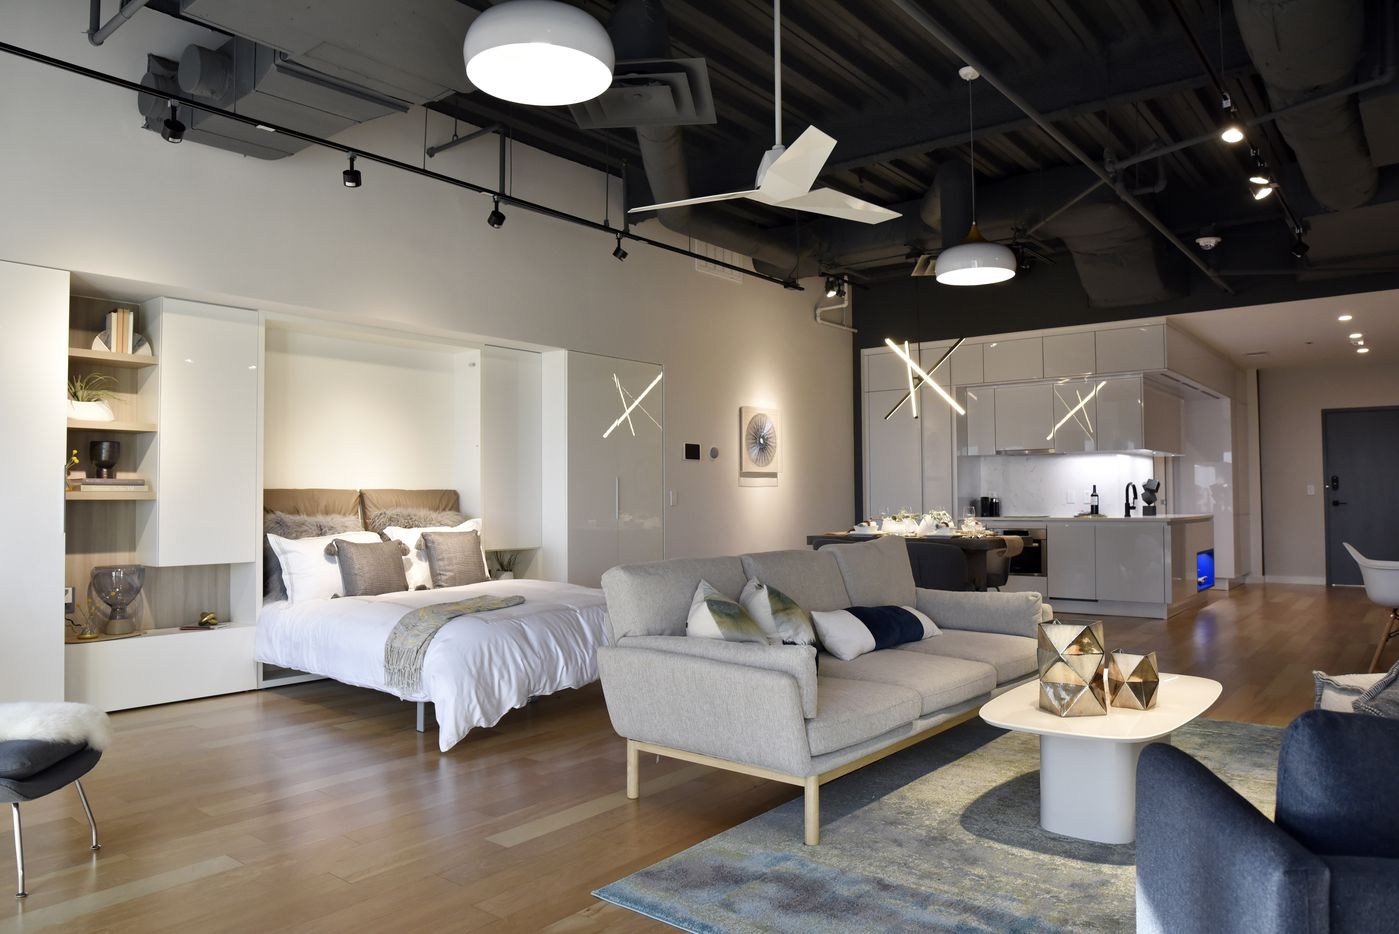 A model apartment for Bluelofts urban high-rise facilities in downtown Dallas,